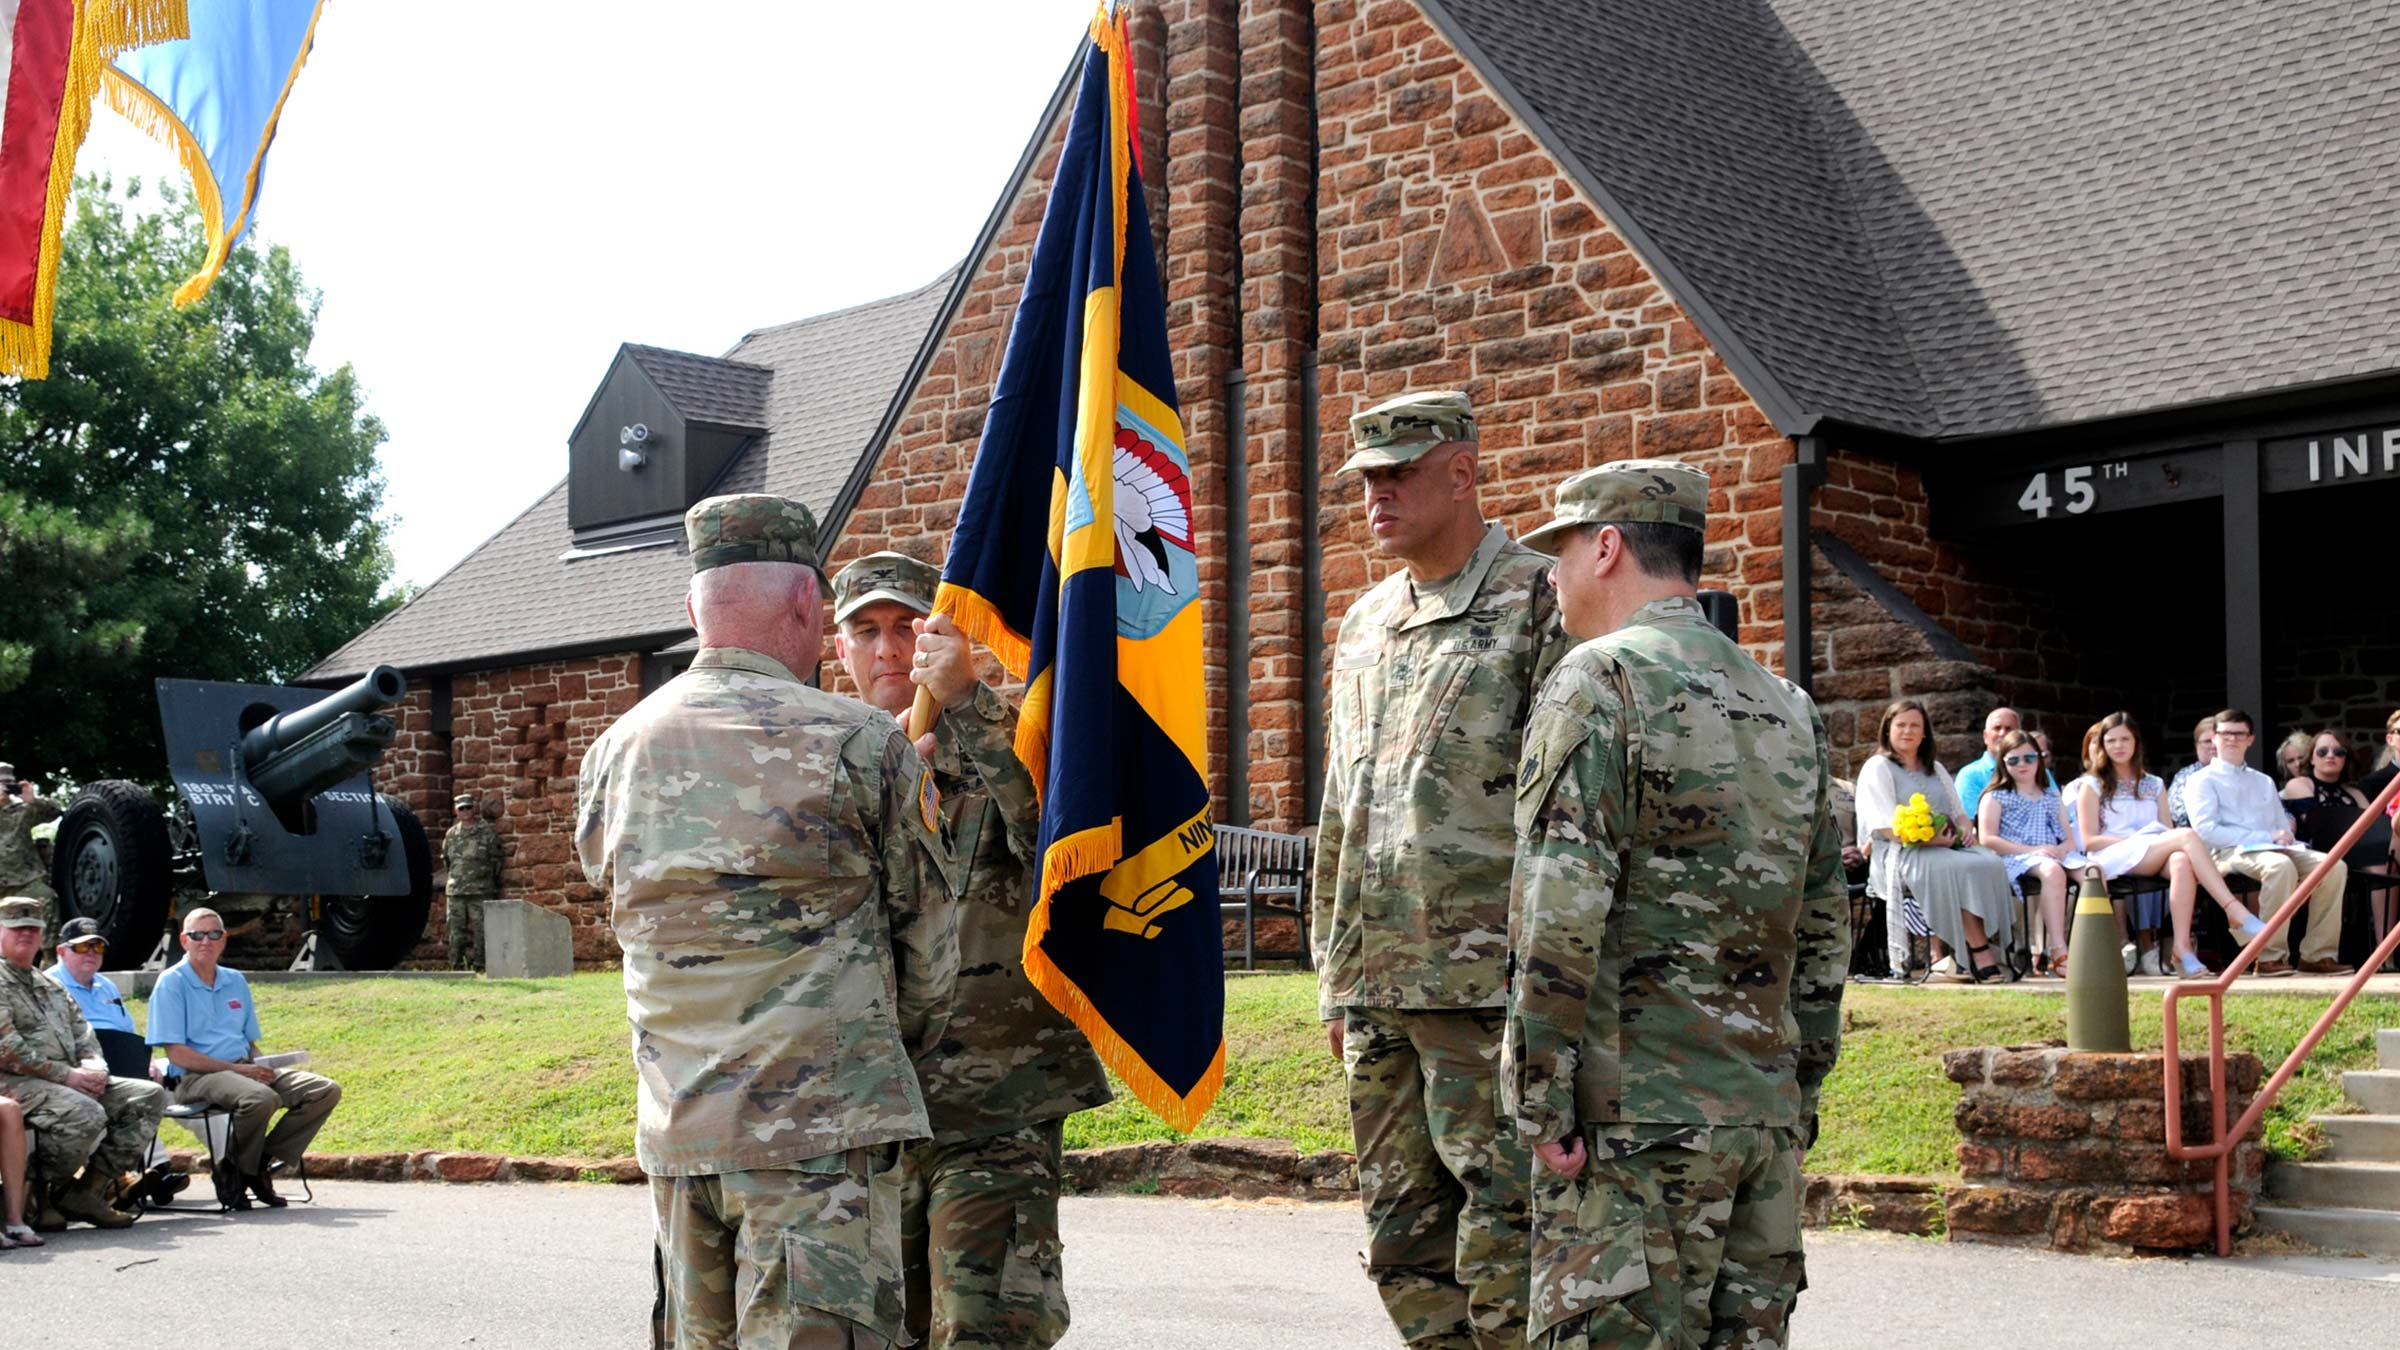 Service members holding a flag